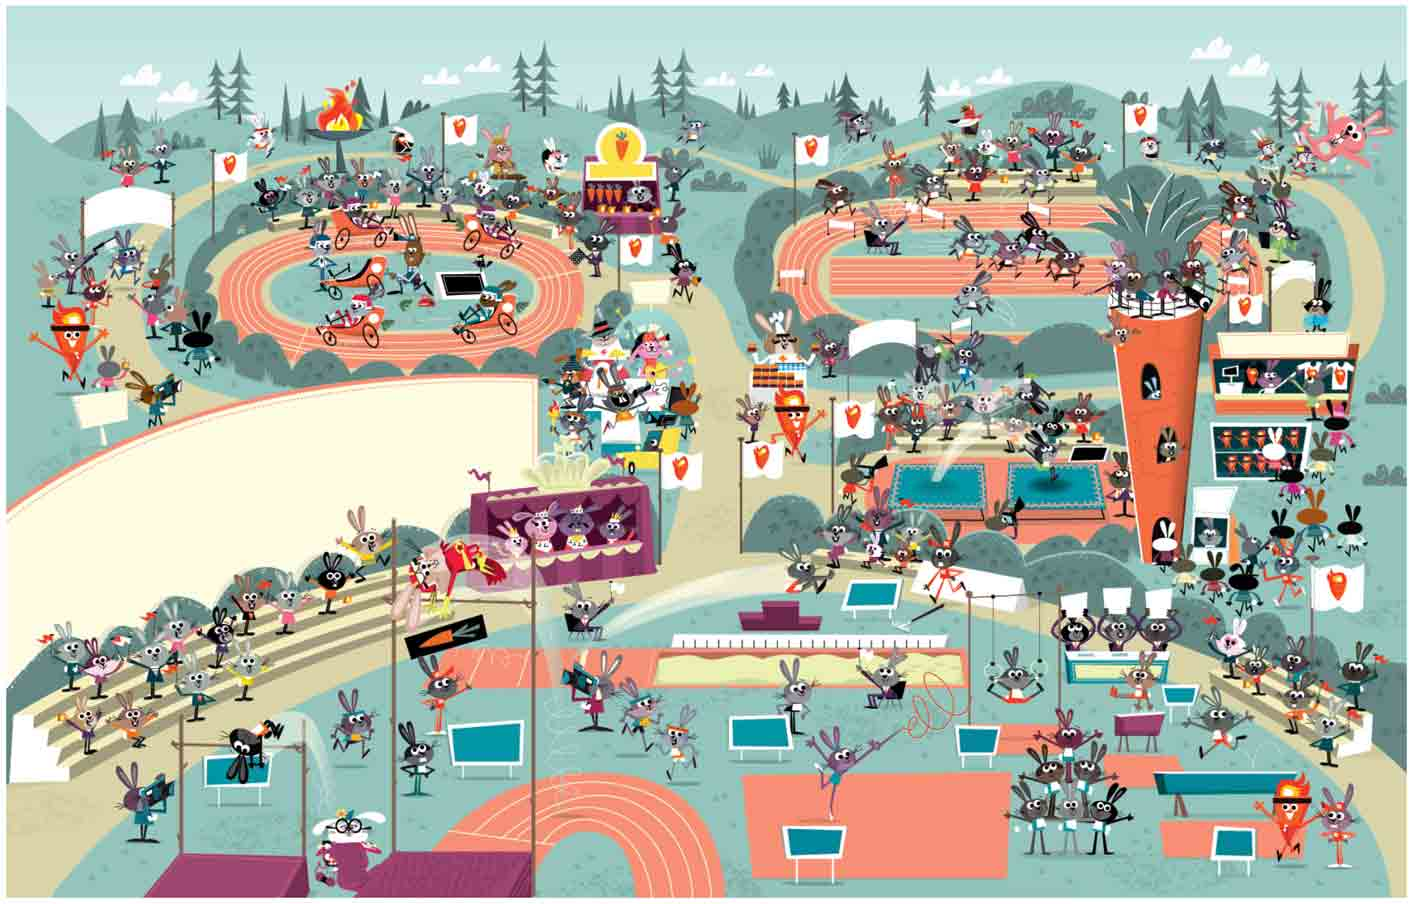 Olympic-Track-and-Field-Scenes-of-animated-Rabbits-inWheres-Waldo-find-it-scene